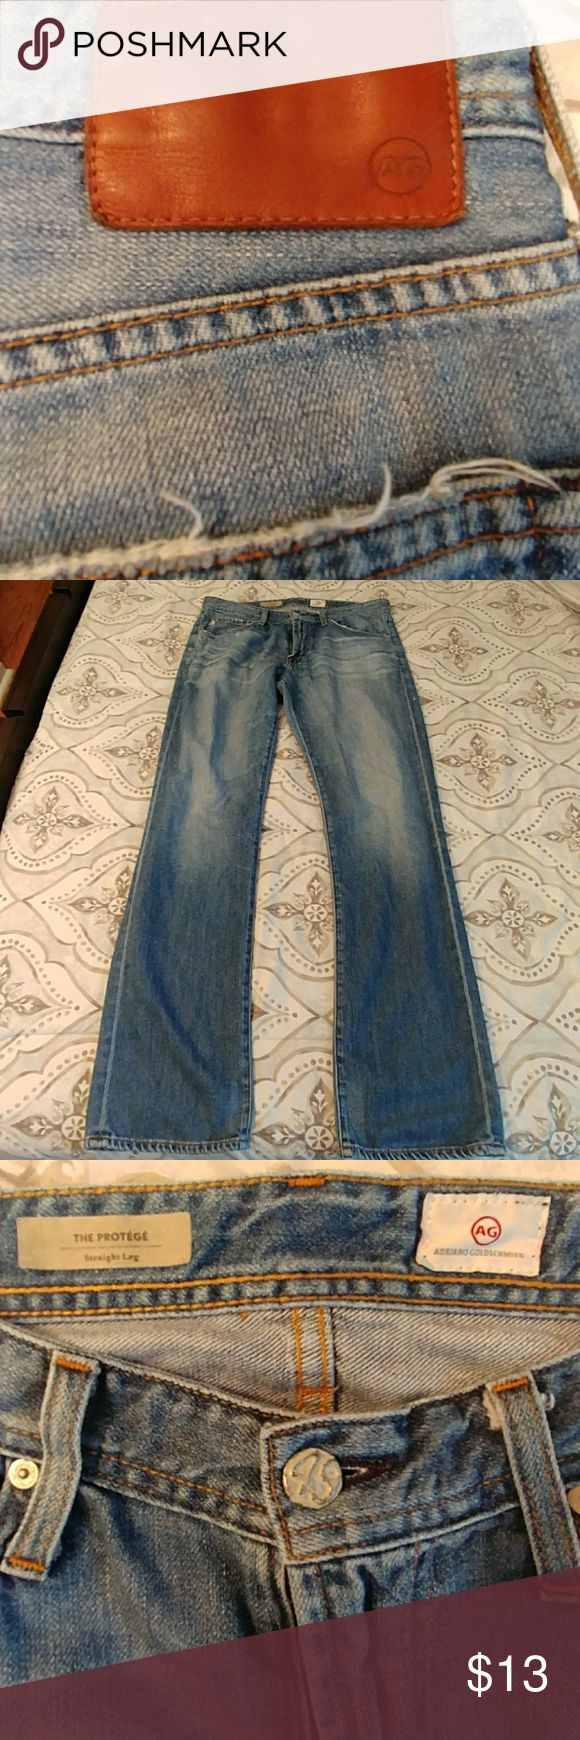 Men's Adriano Goldschmied Jeans Men's Adriano Goldschmied Jeans. Good Used Condition. Small Tear On Side Of Leg As Shown In Picture 7. Size 34. Straight Leg. Ag Adriano Goldschmied Jeans